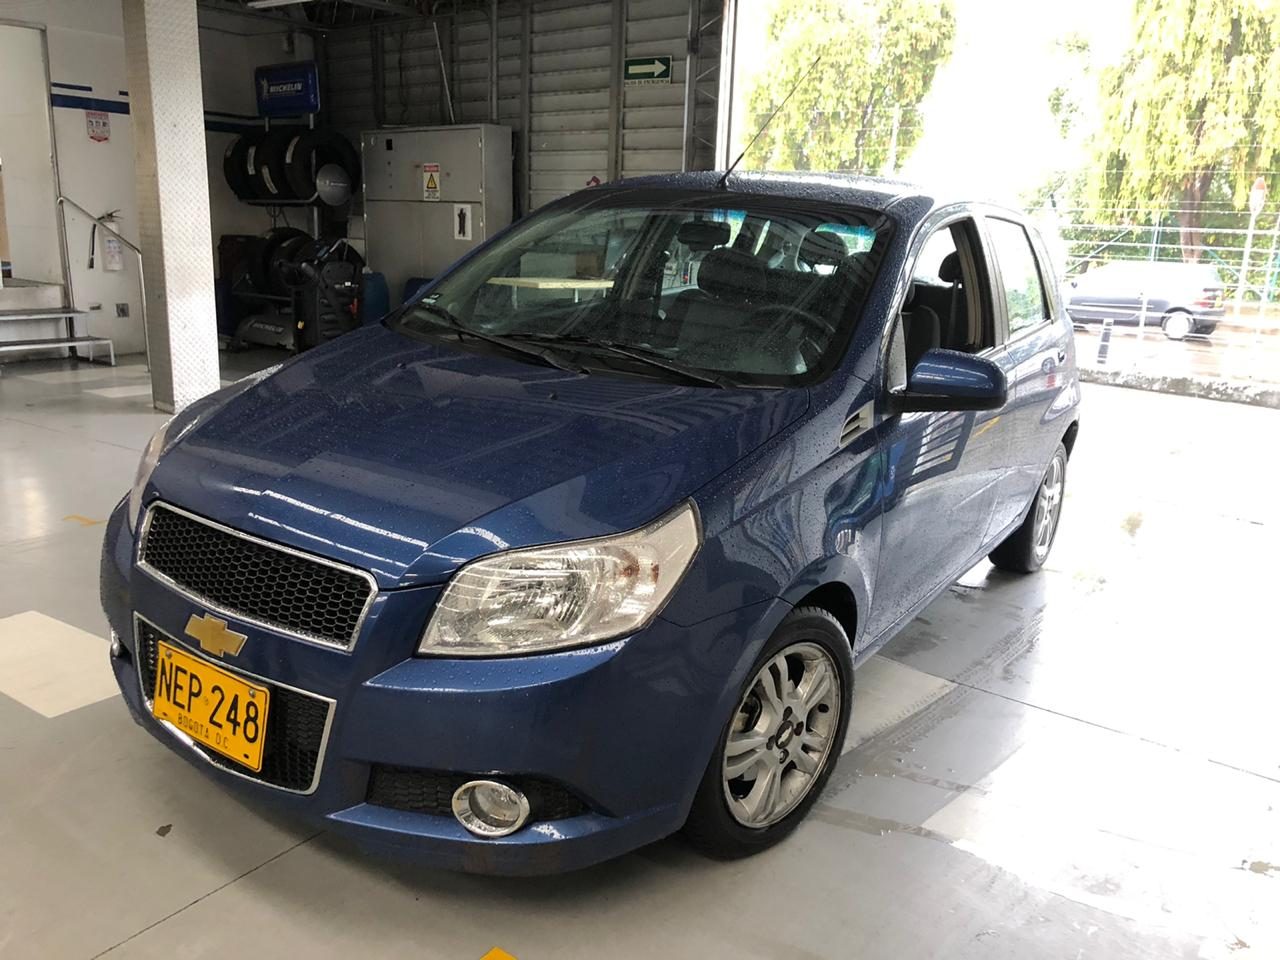 2013 CHEVROLET AVEO EMOTION GT 1.6L FULL PASAJEROS 1,6